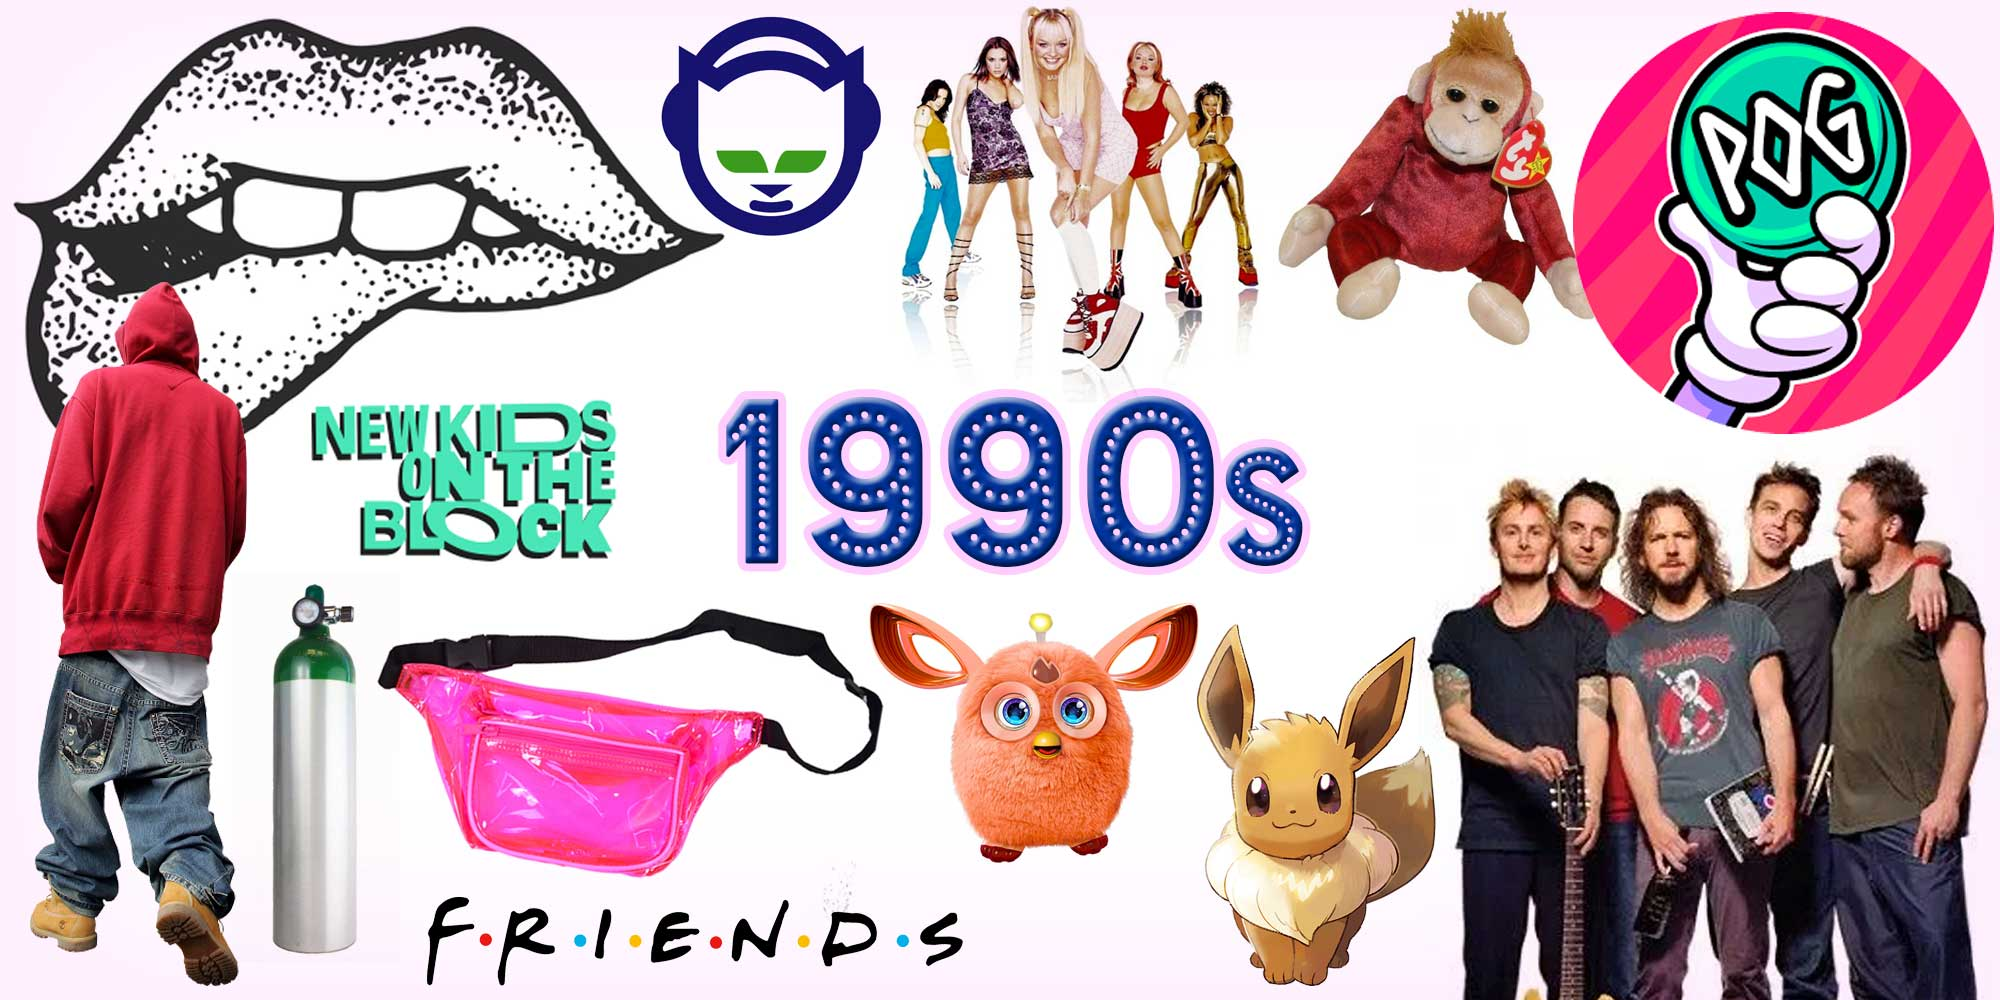 20 Silly 90s Fads That Were Cool Then, But Definitely Aren't Now